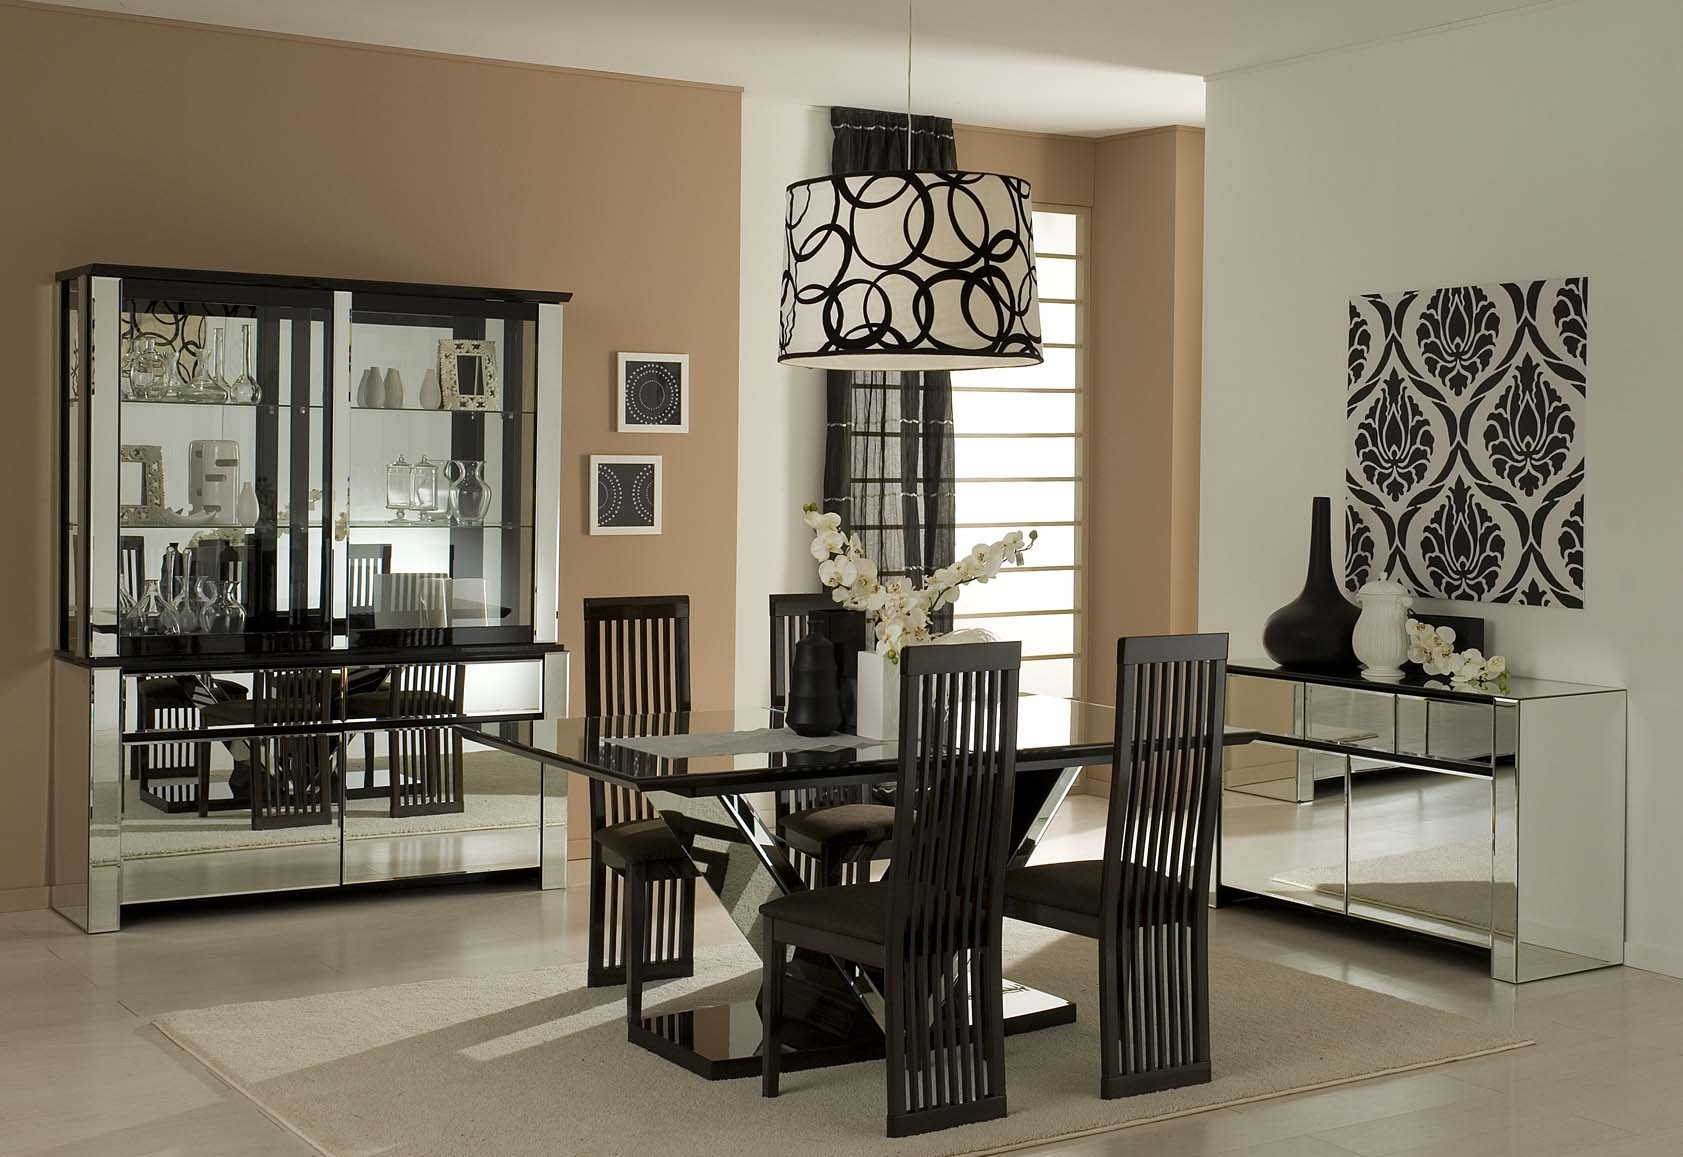 Apartment dining room designs - Decorating Ideas Dining Room